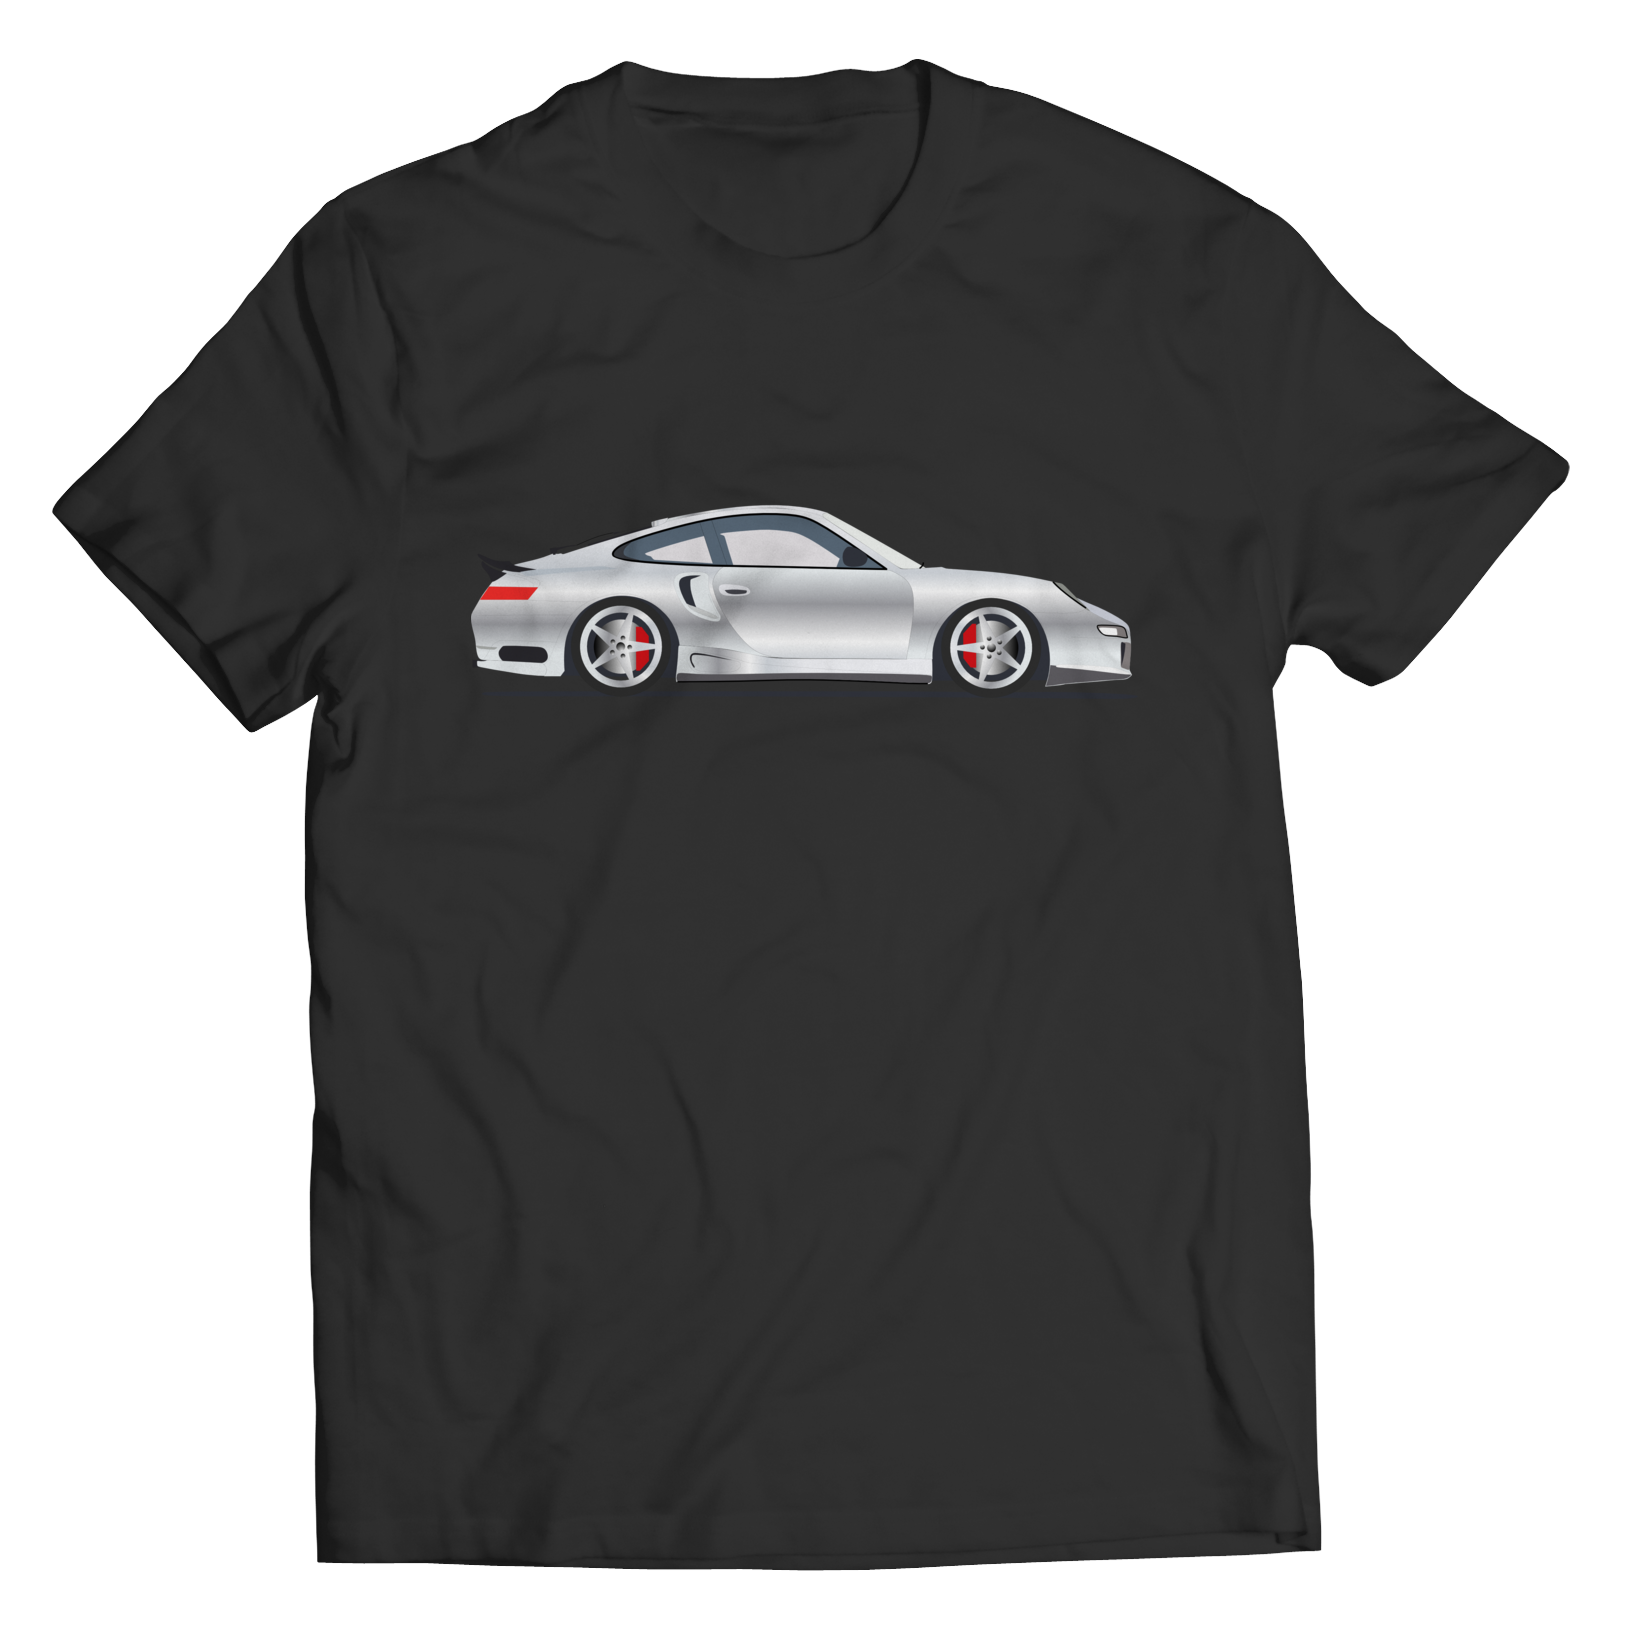 Shirt - Limited Edition - Silver Exotic Sports Car 1